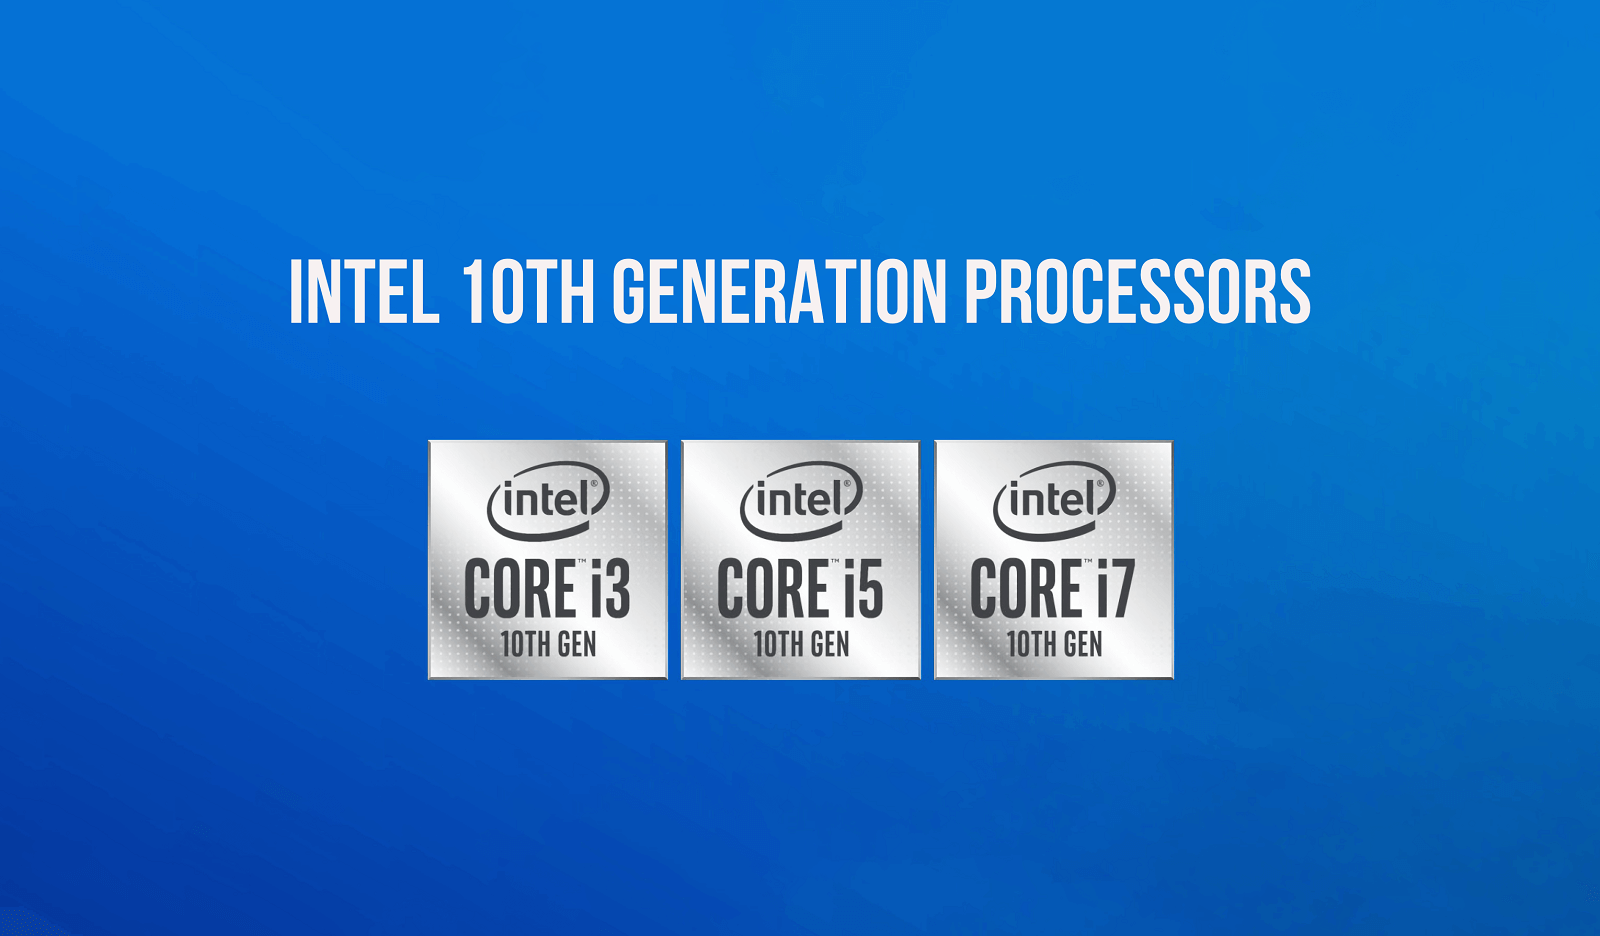 Intel 10th Generation Processors